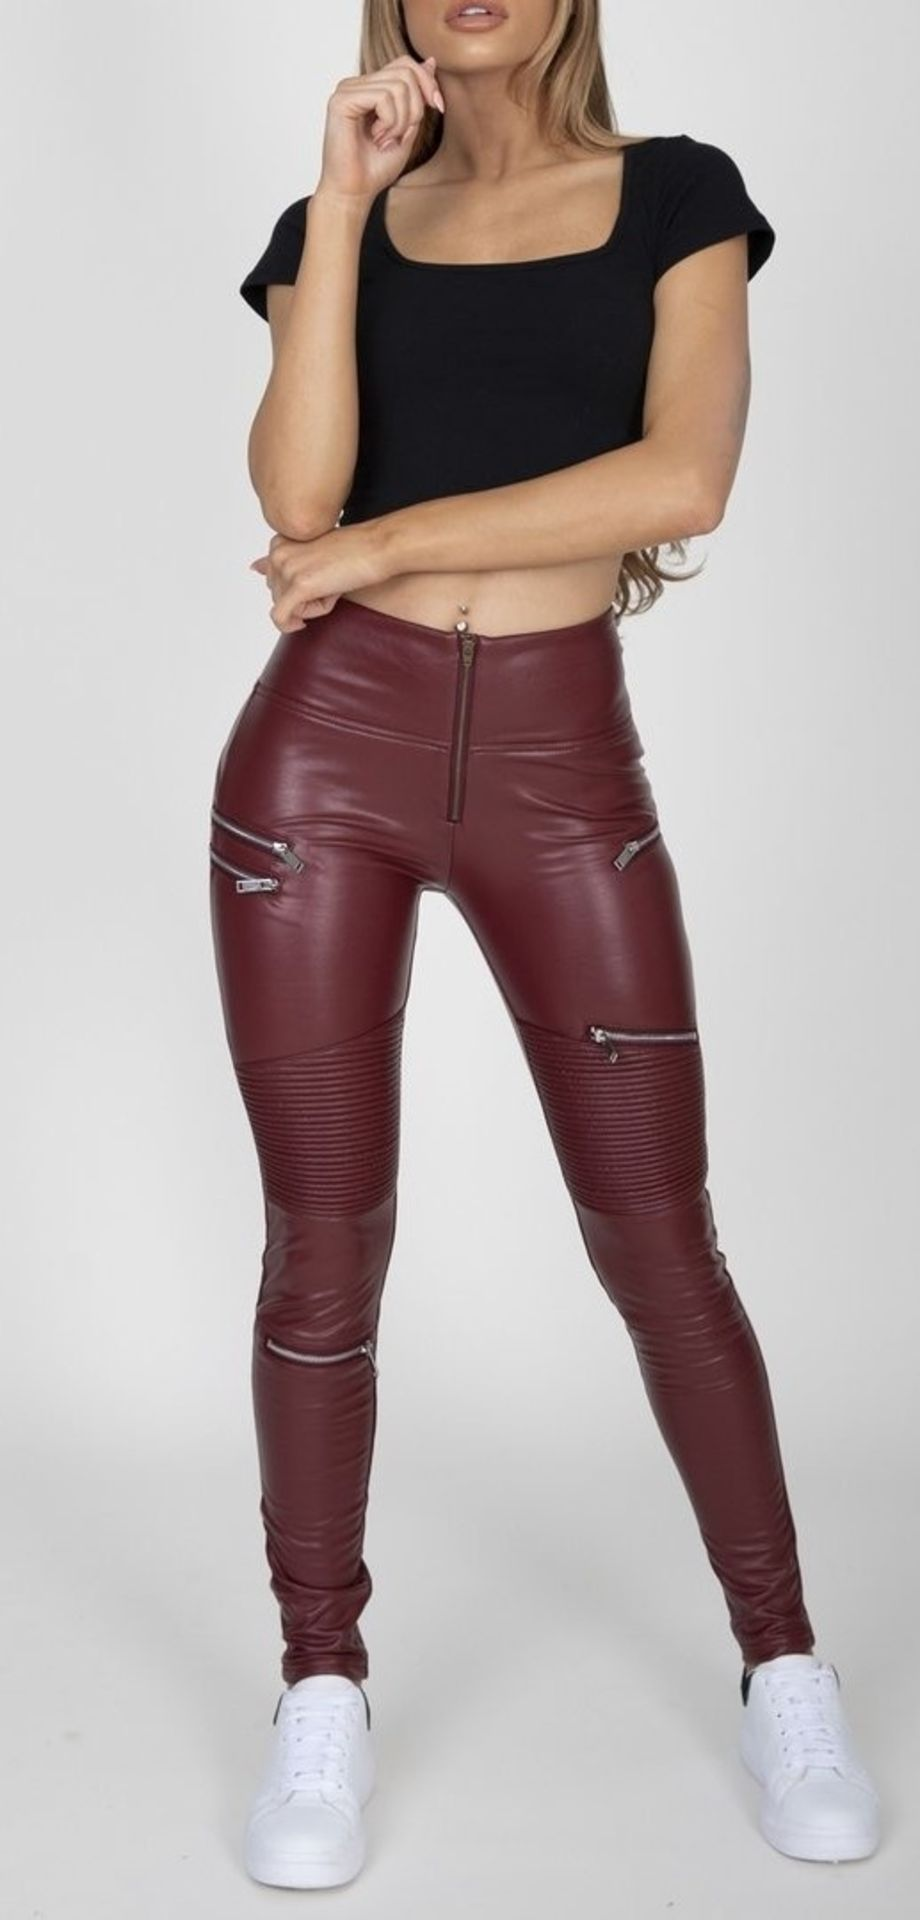 9 X BRAND NEW HUGZ JEANS DESIGNER BRANDED WINE COL FAUX LEATHER BIKER PANTS HIGH WAIST SIZE 8 -